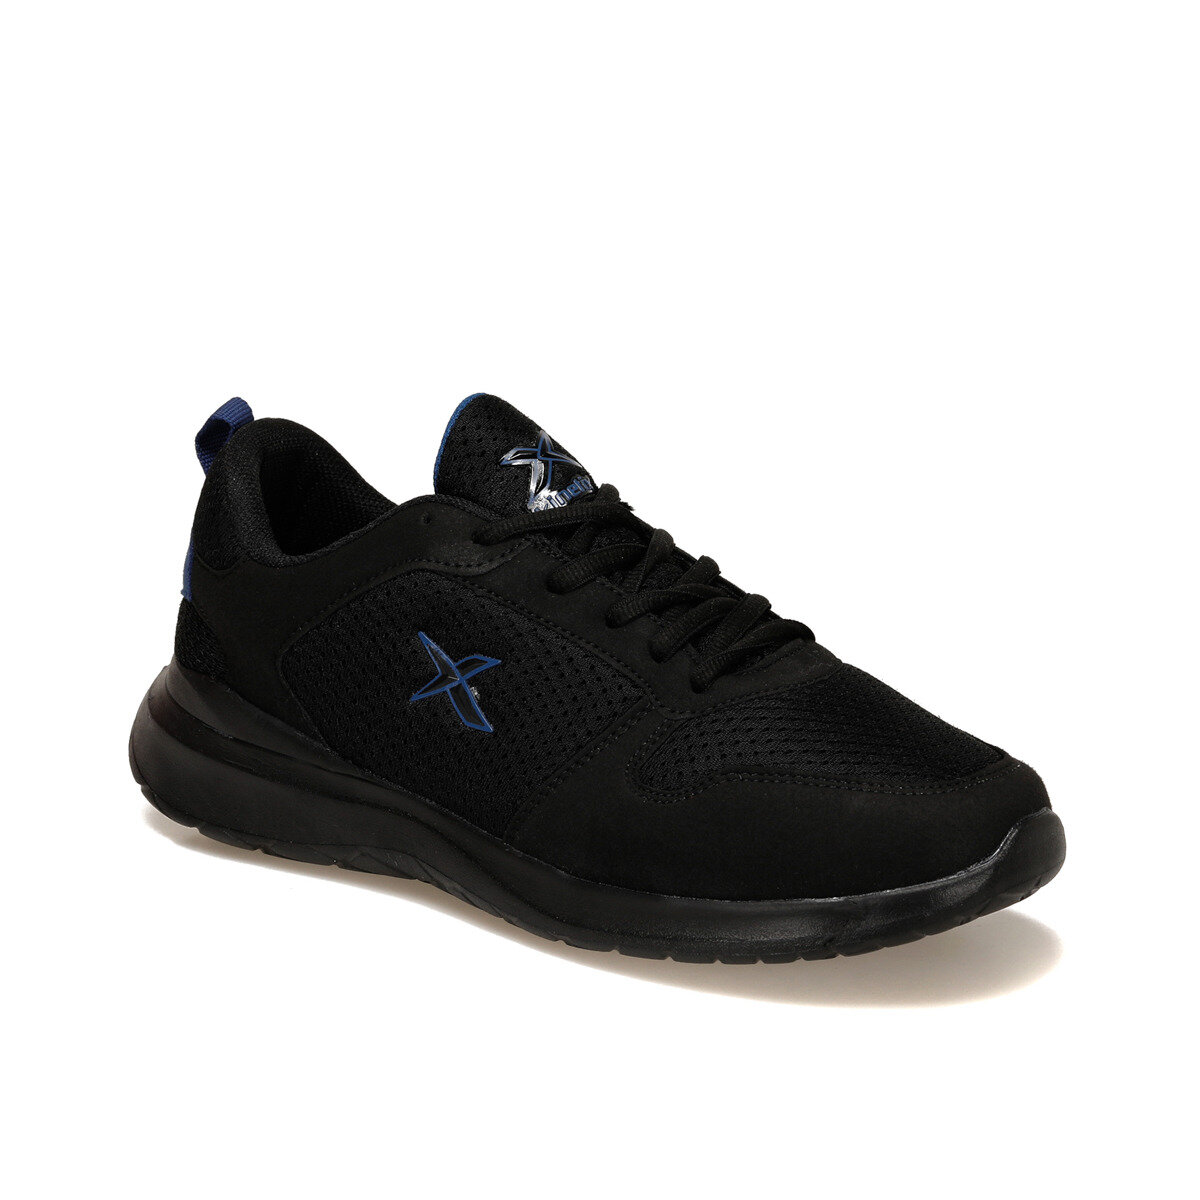 FLO ACTION MESH M Black Men 'S Sneaker Shoes KINETIX